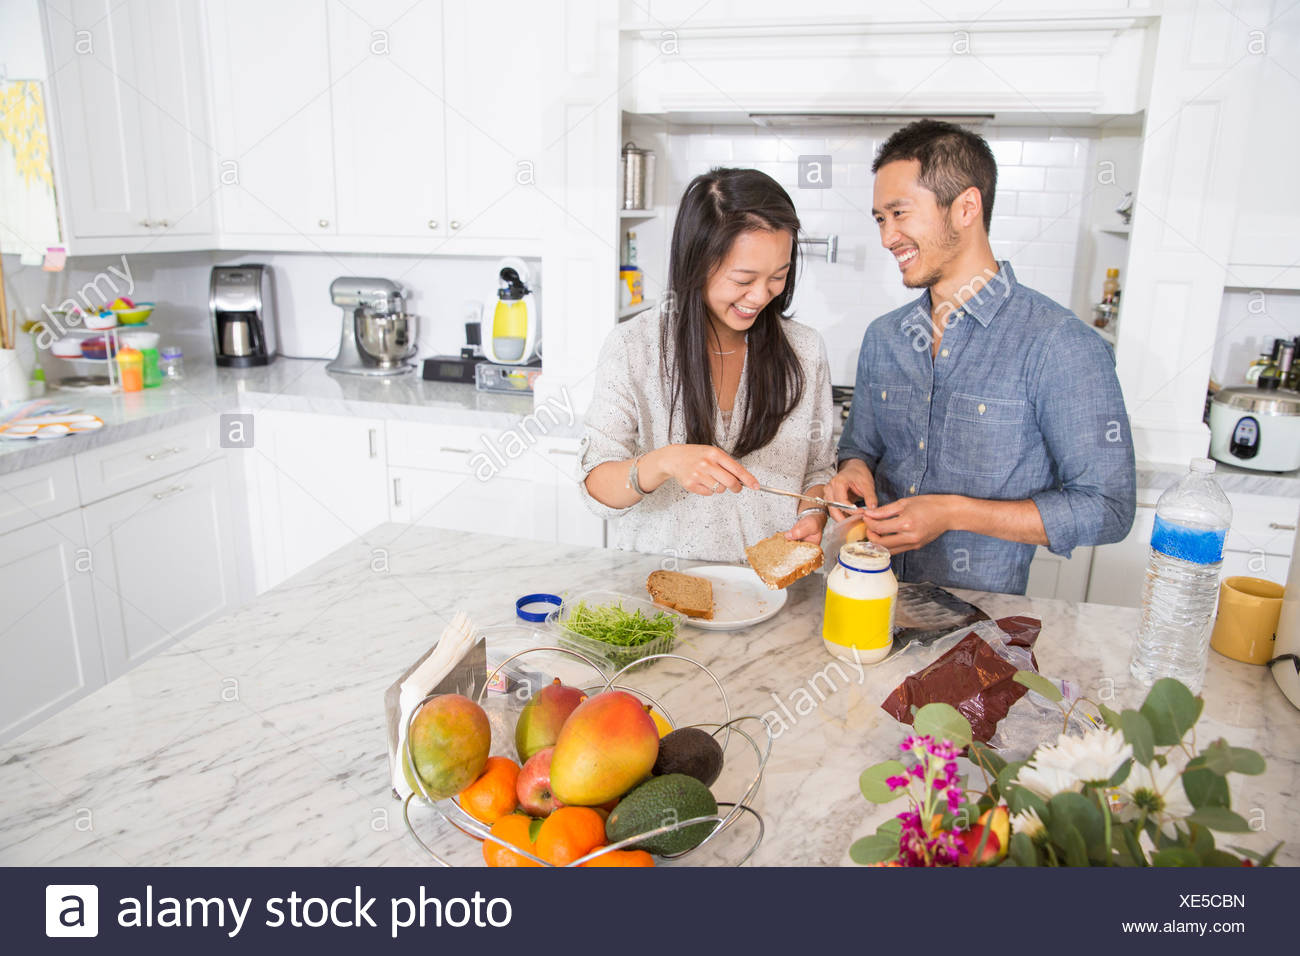 Mid adult couple preparing sandwich in kitchen - Stock Image